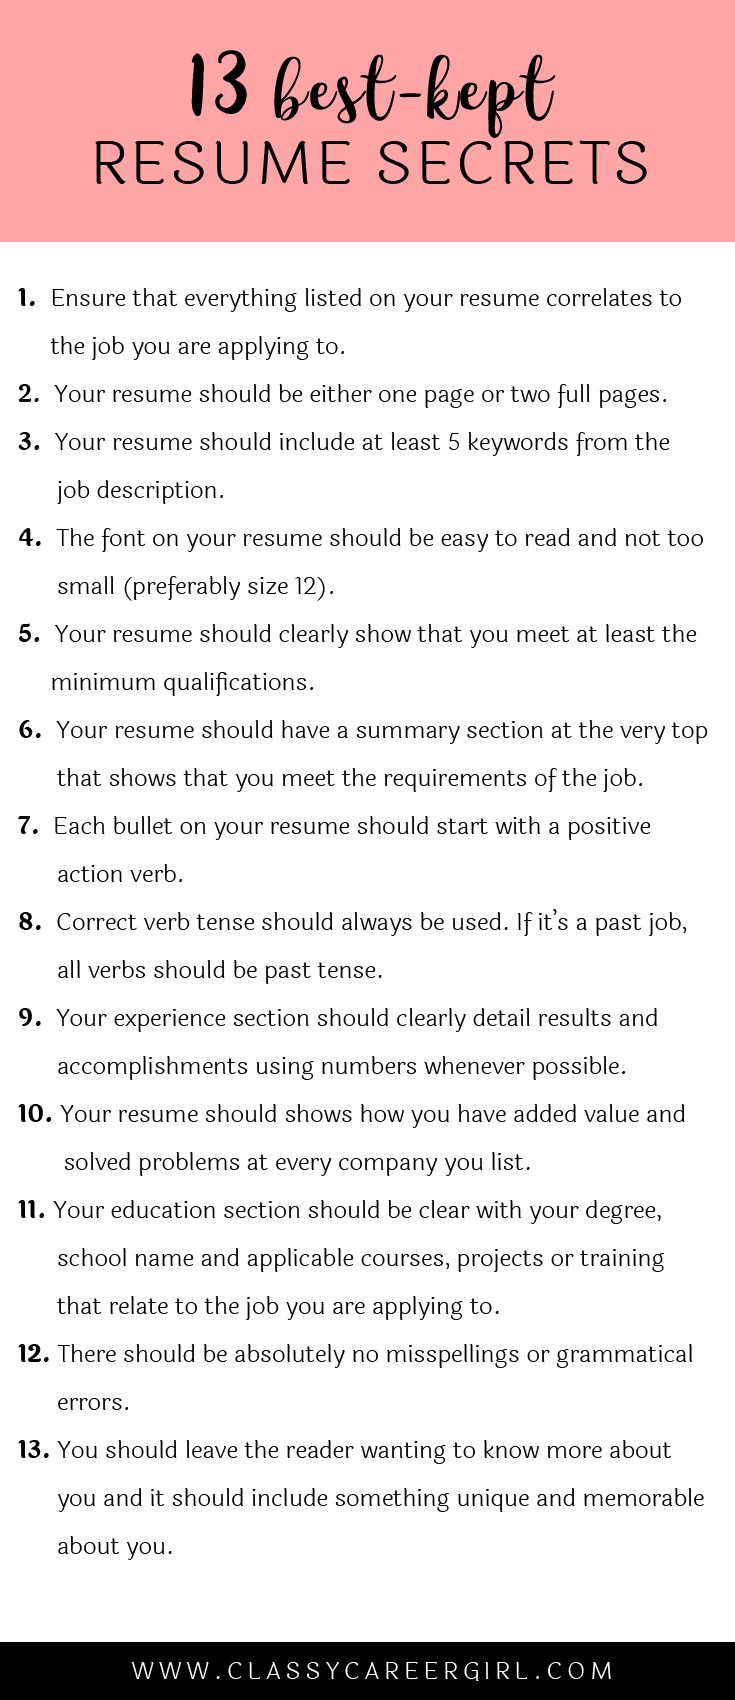 Opposenewapstandardsus  Terrific  Ideas About Resume On Pinterest  Cv Format Resume Cv And  With Foxy Some Hiring Managers Will Toss Your Resume Out If You Dont Know These  With Amusing Proper Resume Also Communications Resume In Addition Indesign Resume And Resume Picture As Well As Computer Technician Resume Additionally High School Student Resume Examples From Pinterestcom With Opposenewapstandardsus  Foxy  Ideas About Resume On Pinterest  Cv Format Resume Cv And  With Amusing Some Hiring Managers Will Toss Your Resume Out If You Dont Know These  And Terrific Proper Resume Also Communications Resume In Addition Indesign Resume From Pinterestcom